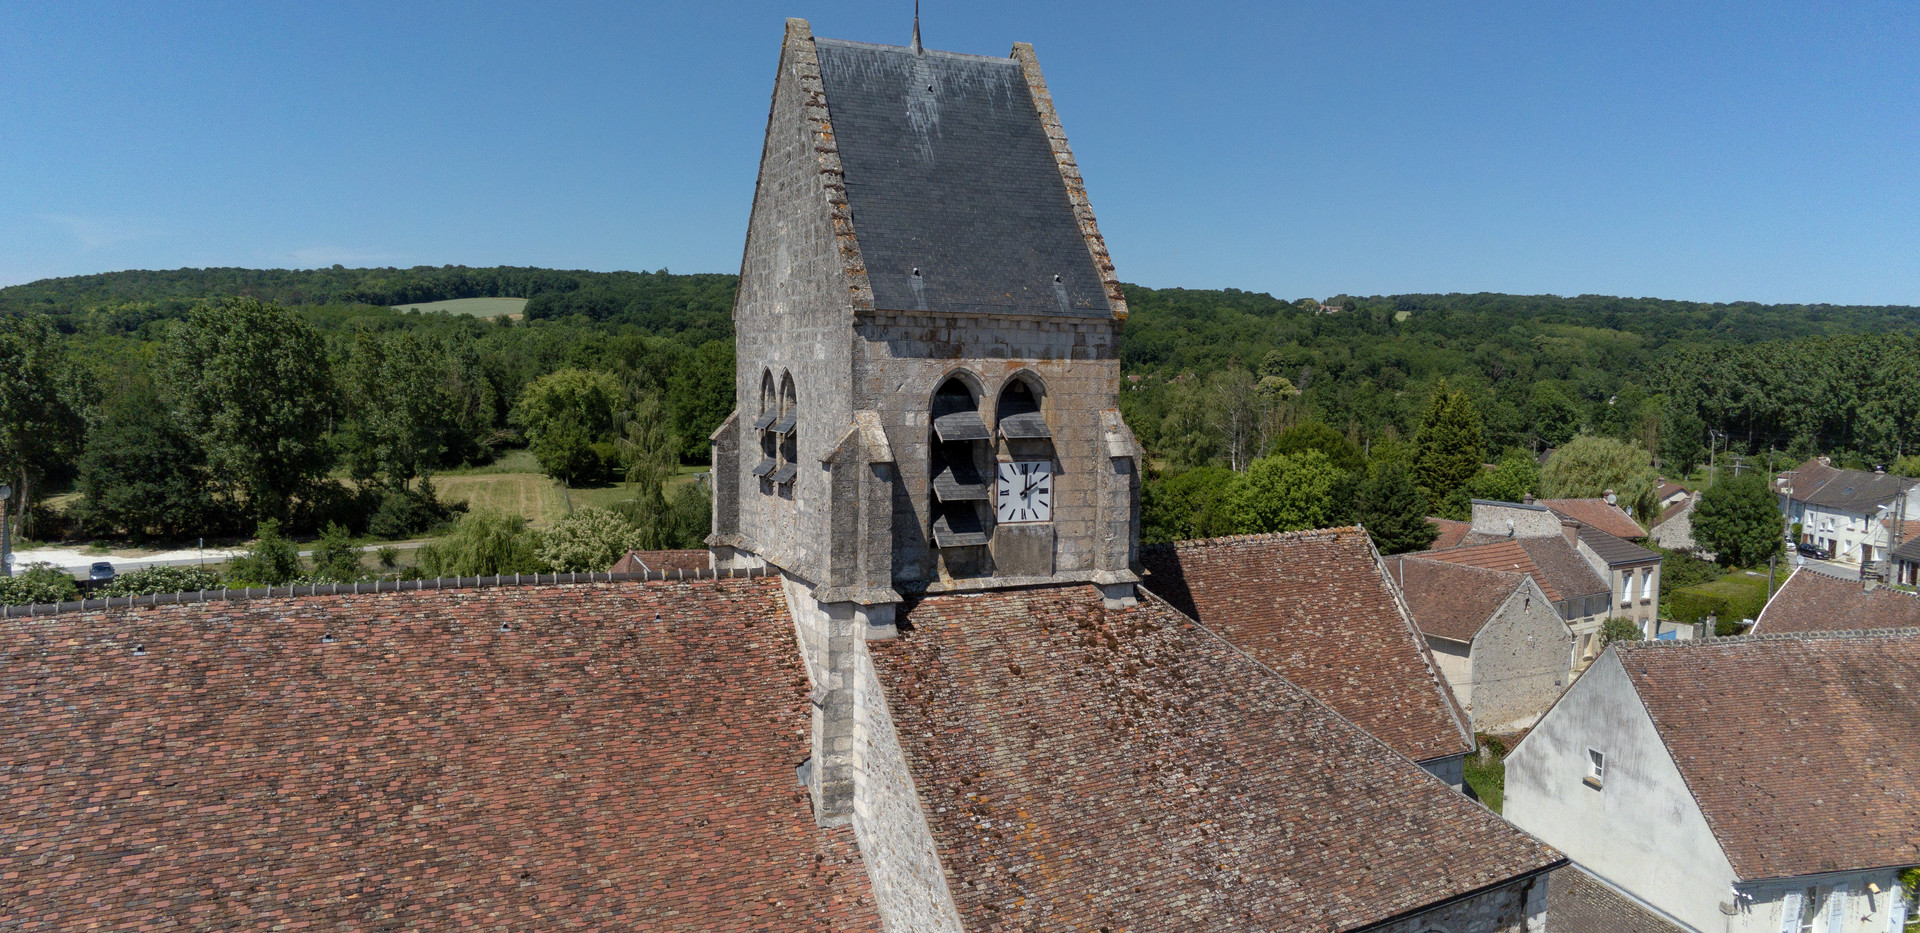 Eglise de bellot 2